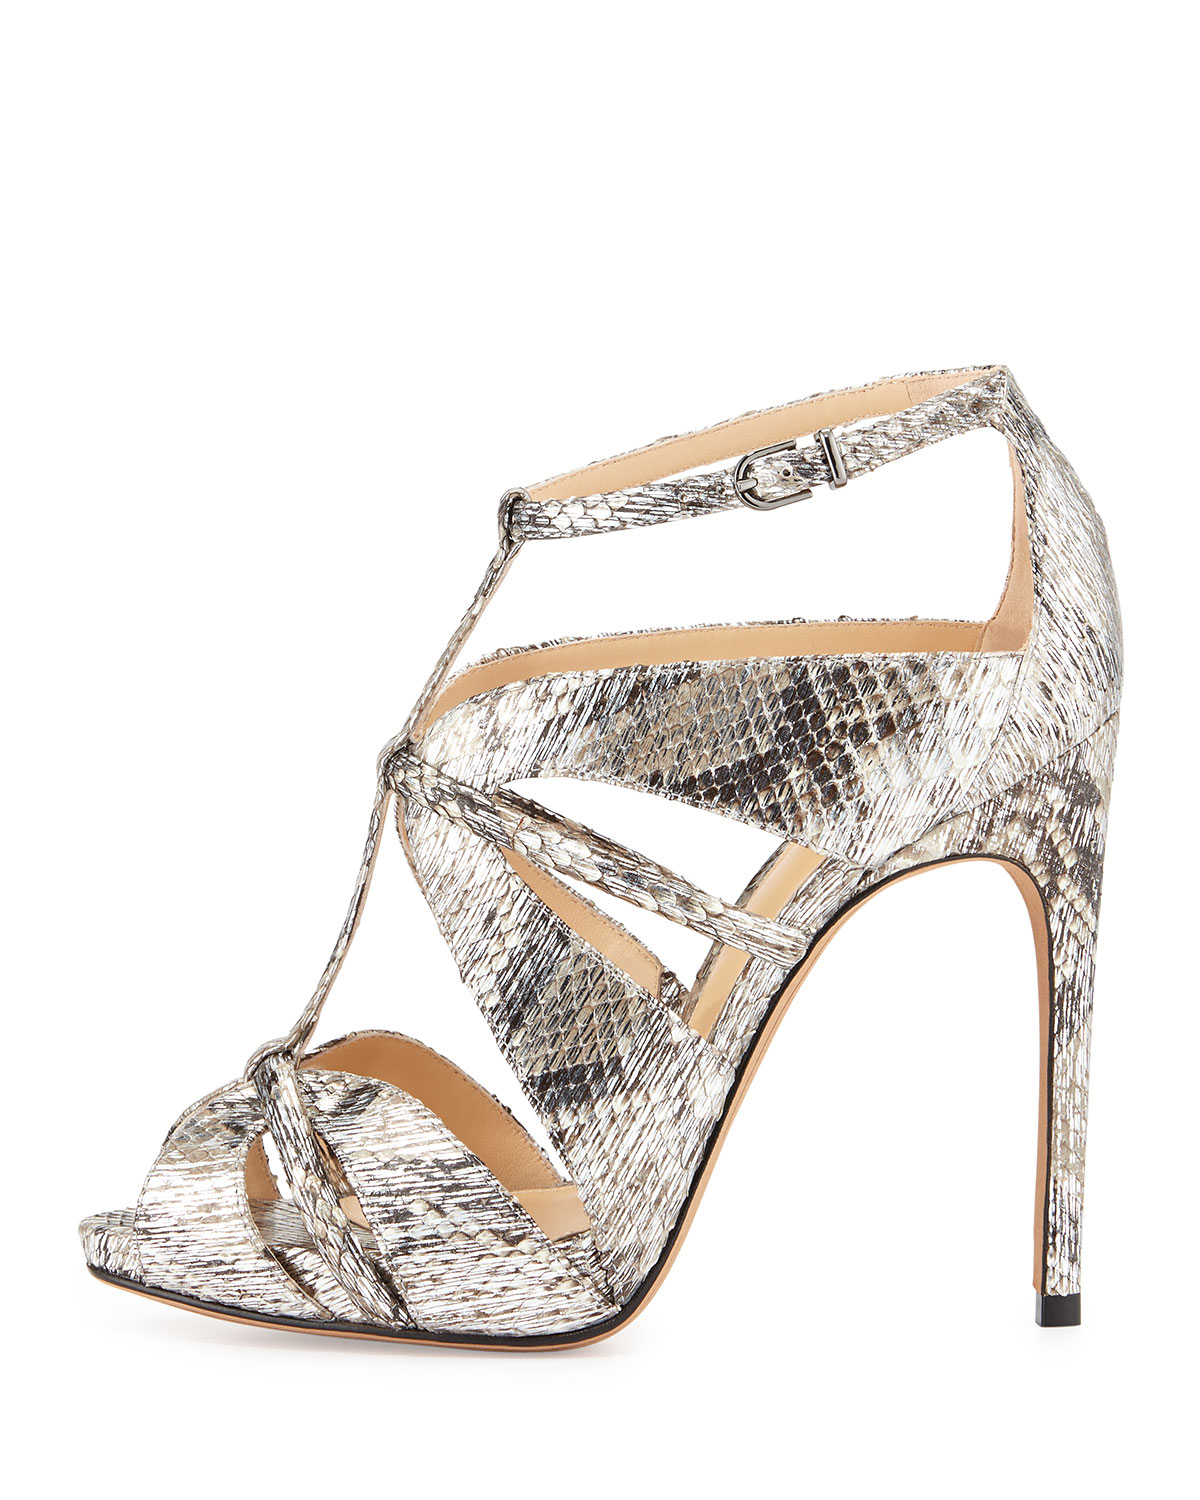 Alexandre Birman Python Caged Sandals cheap best wholesale clearance 2014 new cheap clearance aOmiNu1mbH